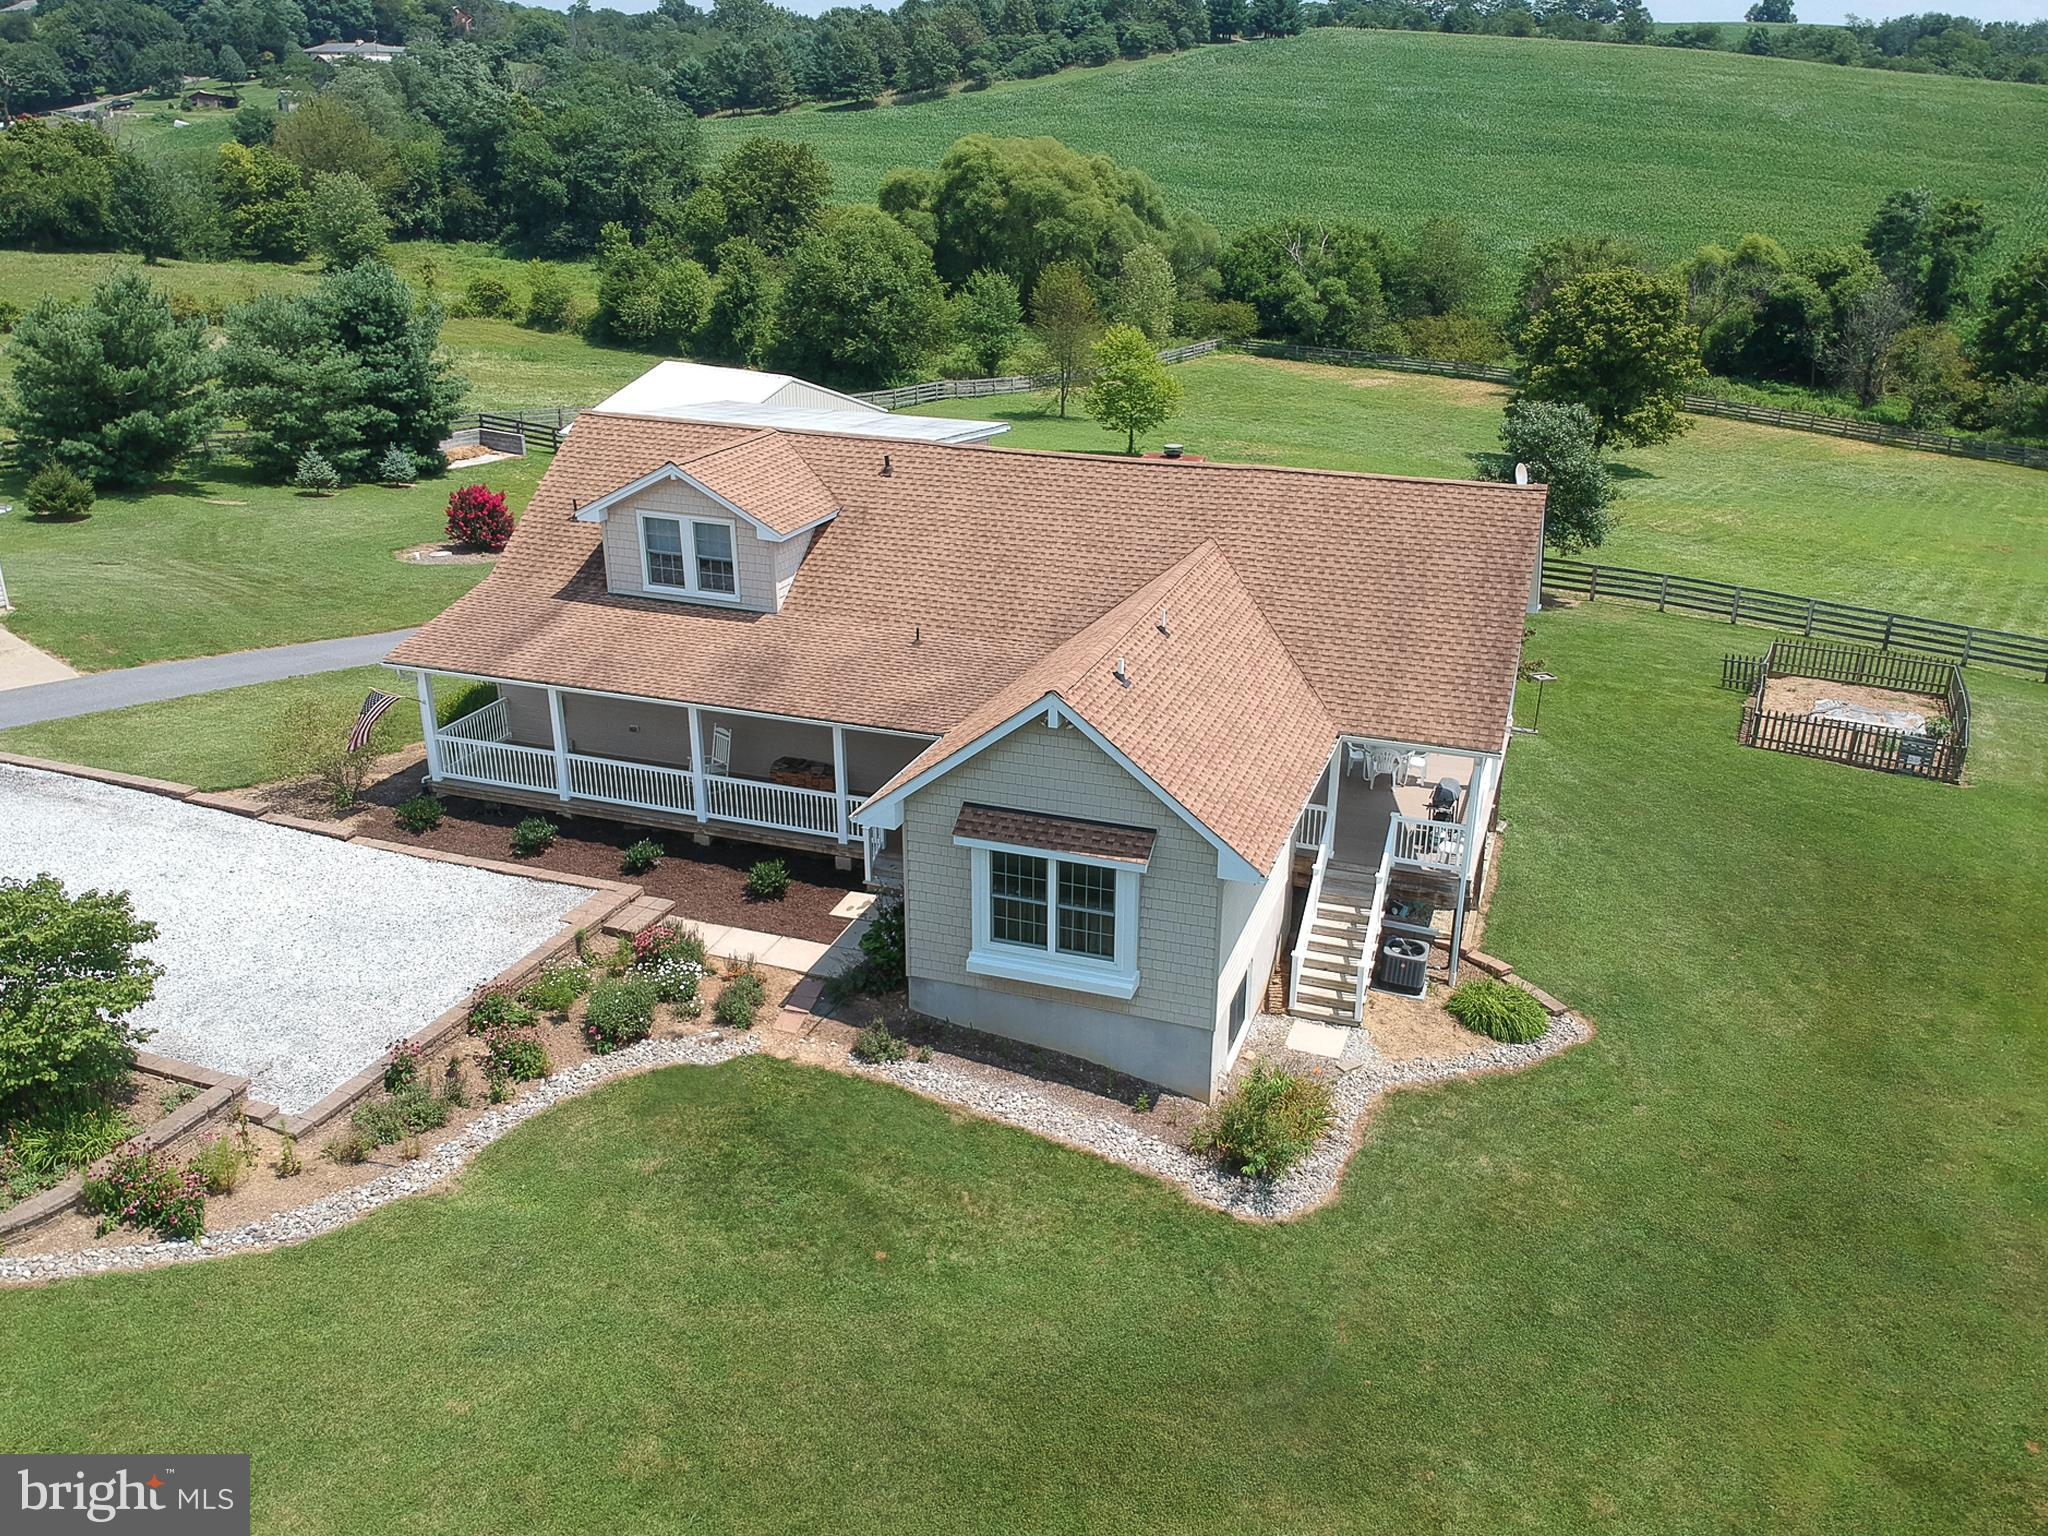 2523 S MARSTON ROAD, NEW WINDSOR, MD 21776